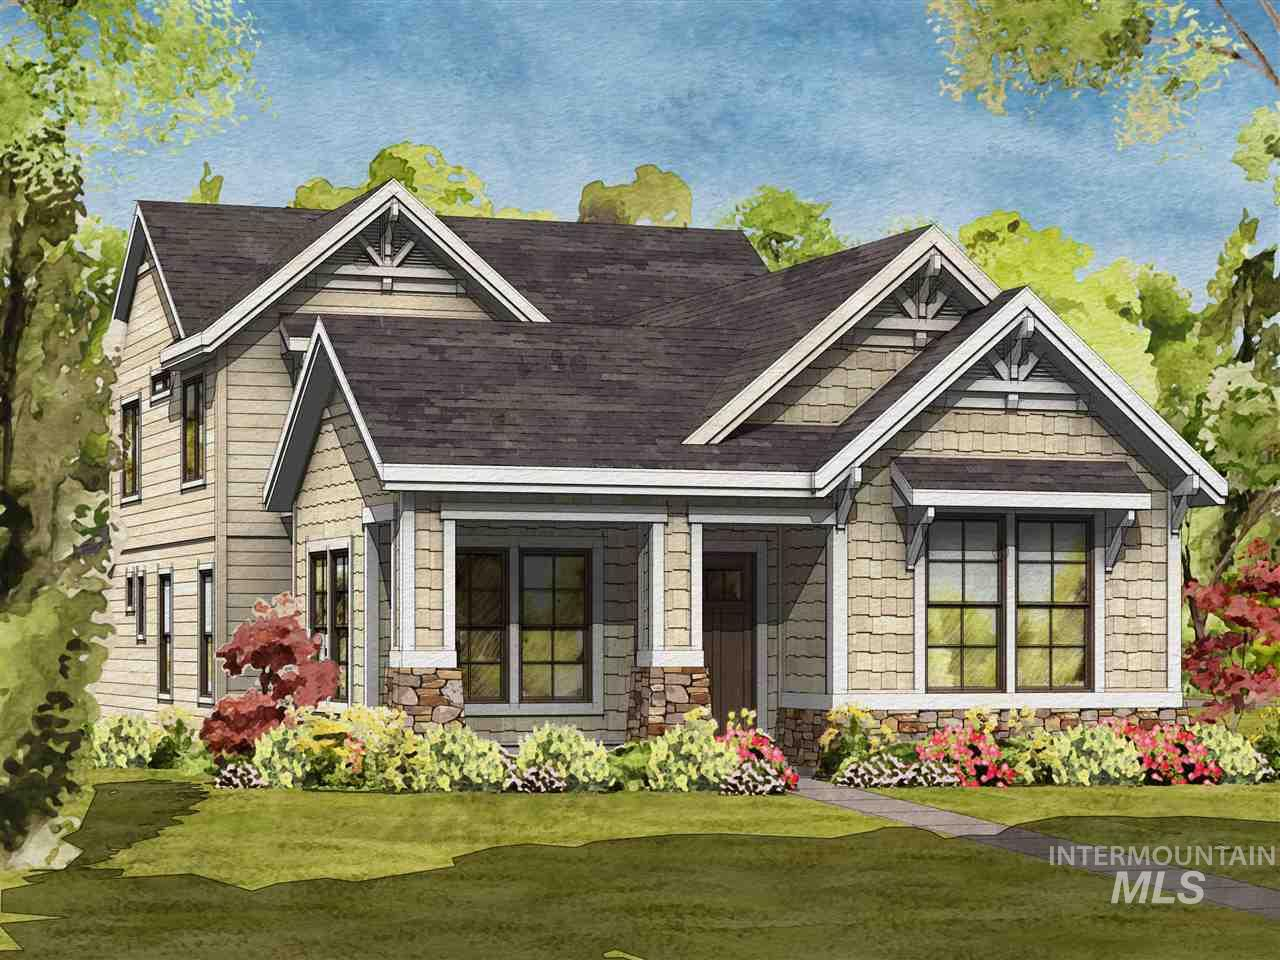 The Summer Sun by Brighton Homes,This spacious two story home features a beautiful main level master with walk-in shower and spacious closet. Retreat to the den to relax with a book or catch up on your favorite hobby.The kitchen features custom cabinets, a walk-in pantry and a stainless steel Bosch appliance package.The open layout makes this home perfect for entertaining. 100% Energy Star Certified. Cadence 55+ age qualified community. Interior specs shown are subject to change prior to completion date.